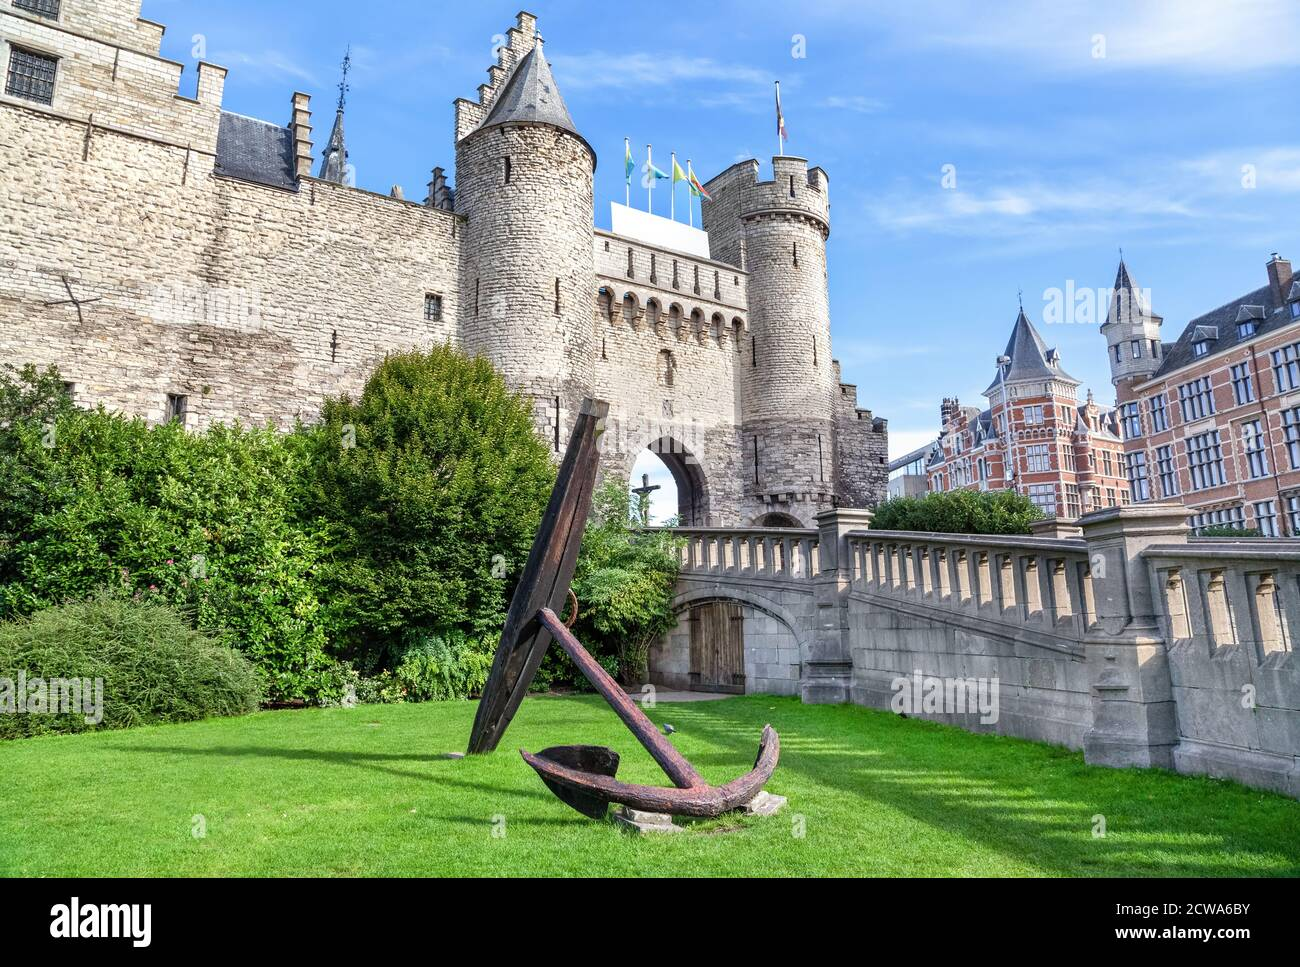 Het Steen - a medieval castle in the old city centre of Antwerp, Belgium Stock Photo